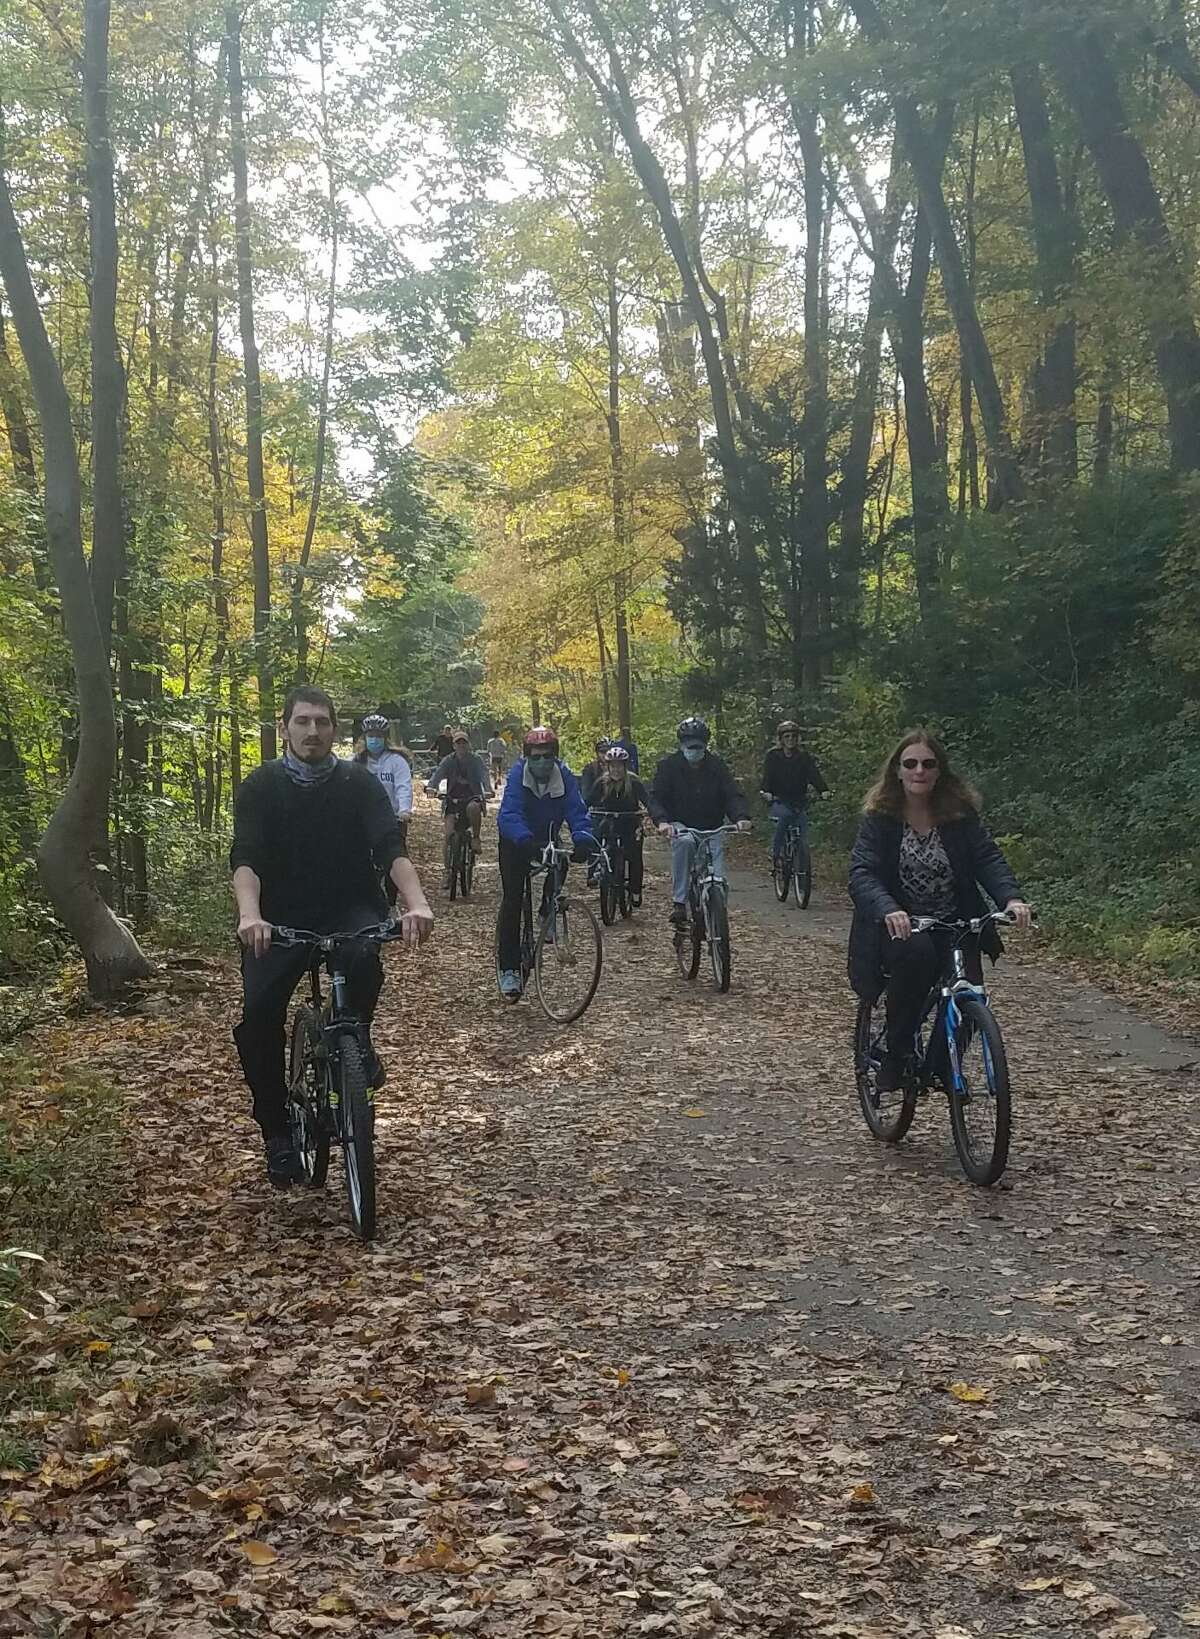 Local rail-trail historian/author, Sue A. DelBianco, pictured right/front in the bottom photo, brings a group of cyclists on a journey back in time to when train was king. She stopped off at many historical sites along the rail-trail in the Trumbull Valley on Sunday, Oct. 18. The site included a cow tunnel, site of a train wreck from 1901, remains of an ice house, a knit mill, an amusement park called Parlor Rock, two train stations and more. DelBianco tells the story of why the railroad vanished, and how it was turned into one of Connecticut's best recreational trails. Another historical bike tour is planned for May, 2021, which will be announced in The Trumbull Times.